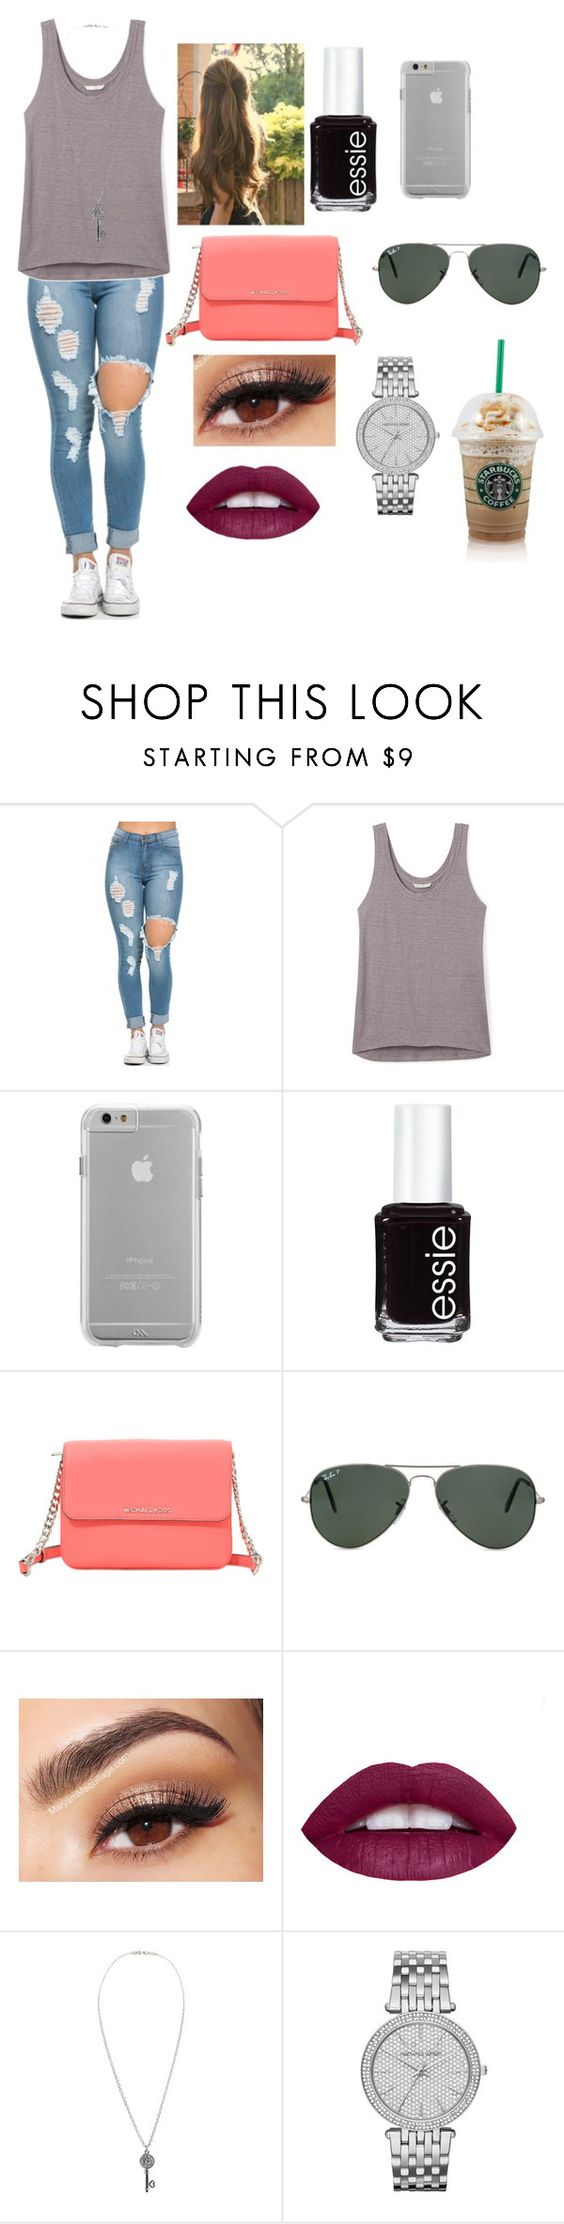 """Untitled #736"" by amarianamichelle ❤ liked on Polyvore featuring mode, Rebecca Minkoff, Case-Mate, Essie, Michael Kors, Ray-Ban, Lancôme, Aéropostale, starbucks et lazy"